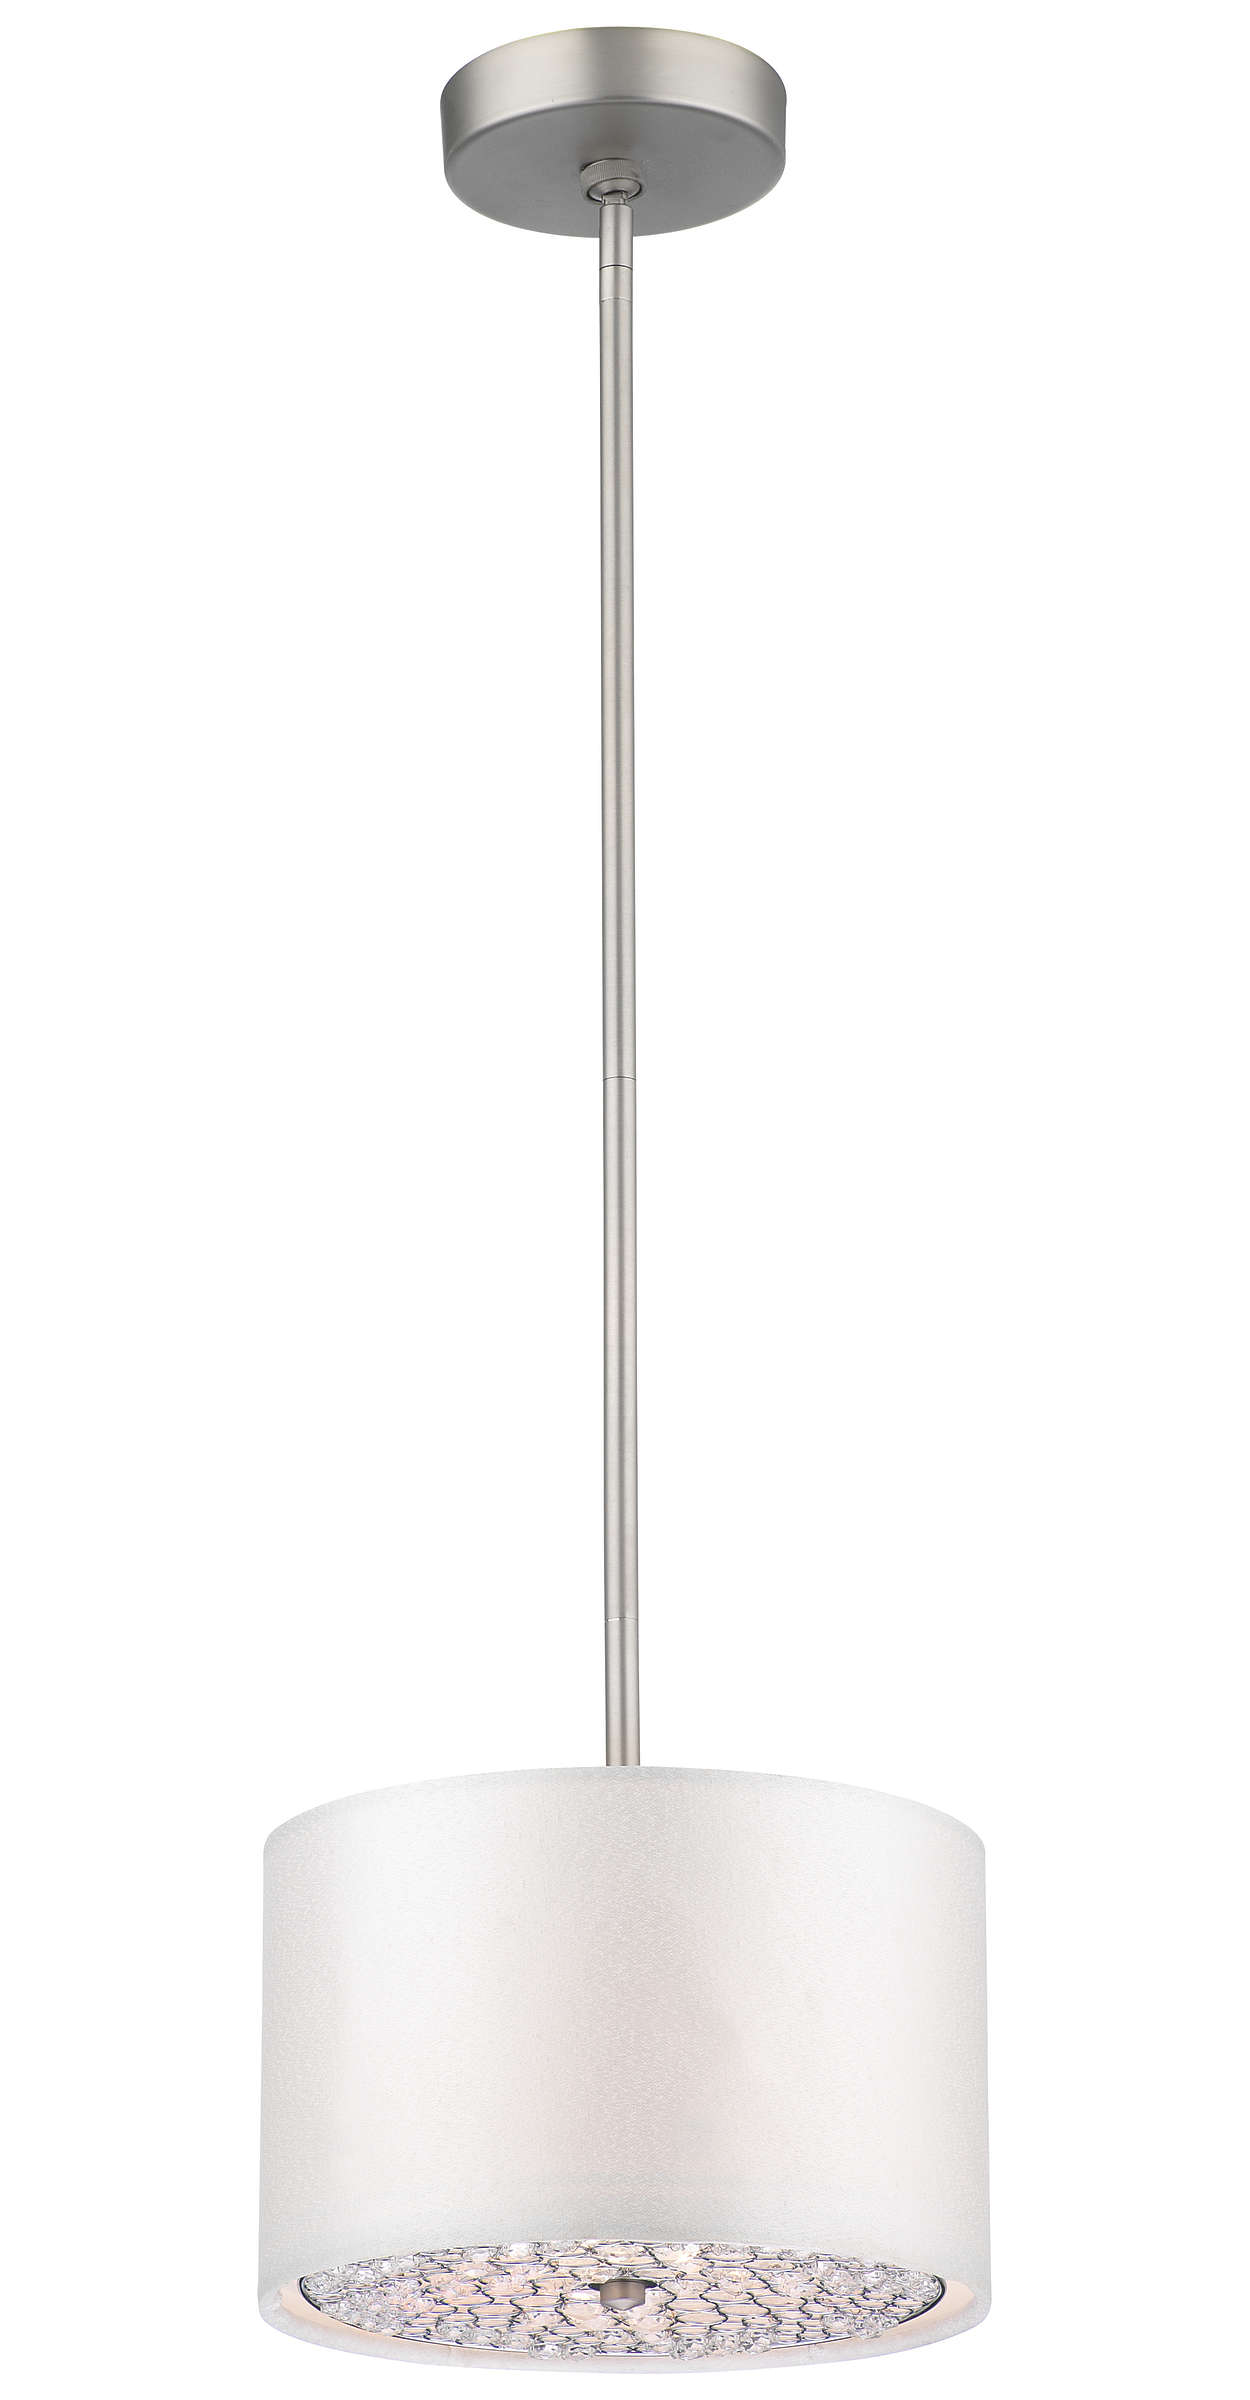 Pavo 1-light Pendant in Brushed Nickel finish